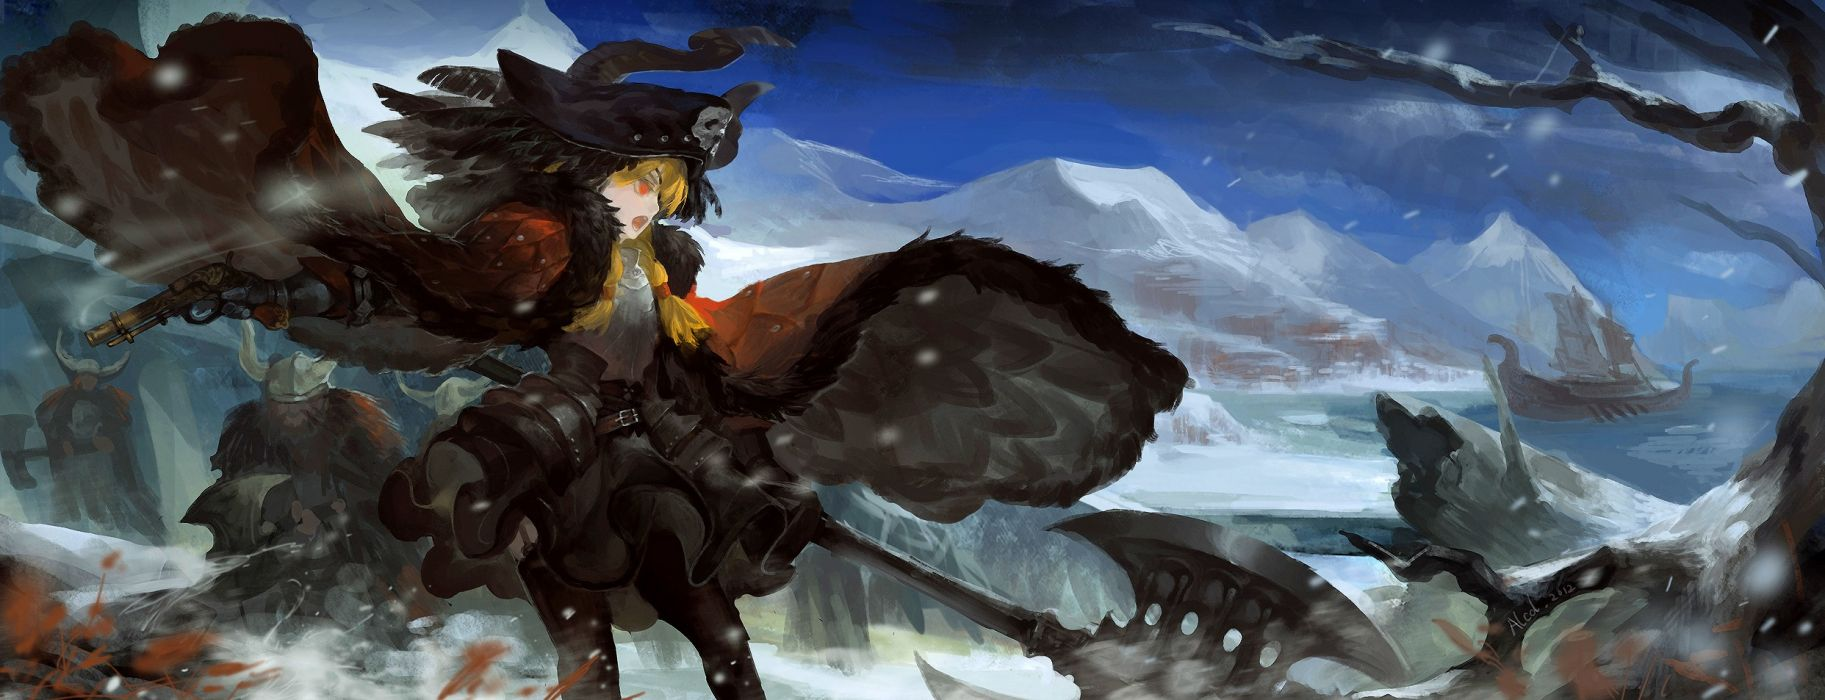 mountains snow guns smoke long hair weapons red eyes axes open mouth drawings anime girls Pixiv Fantasia wallpaper